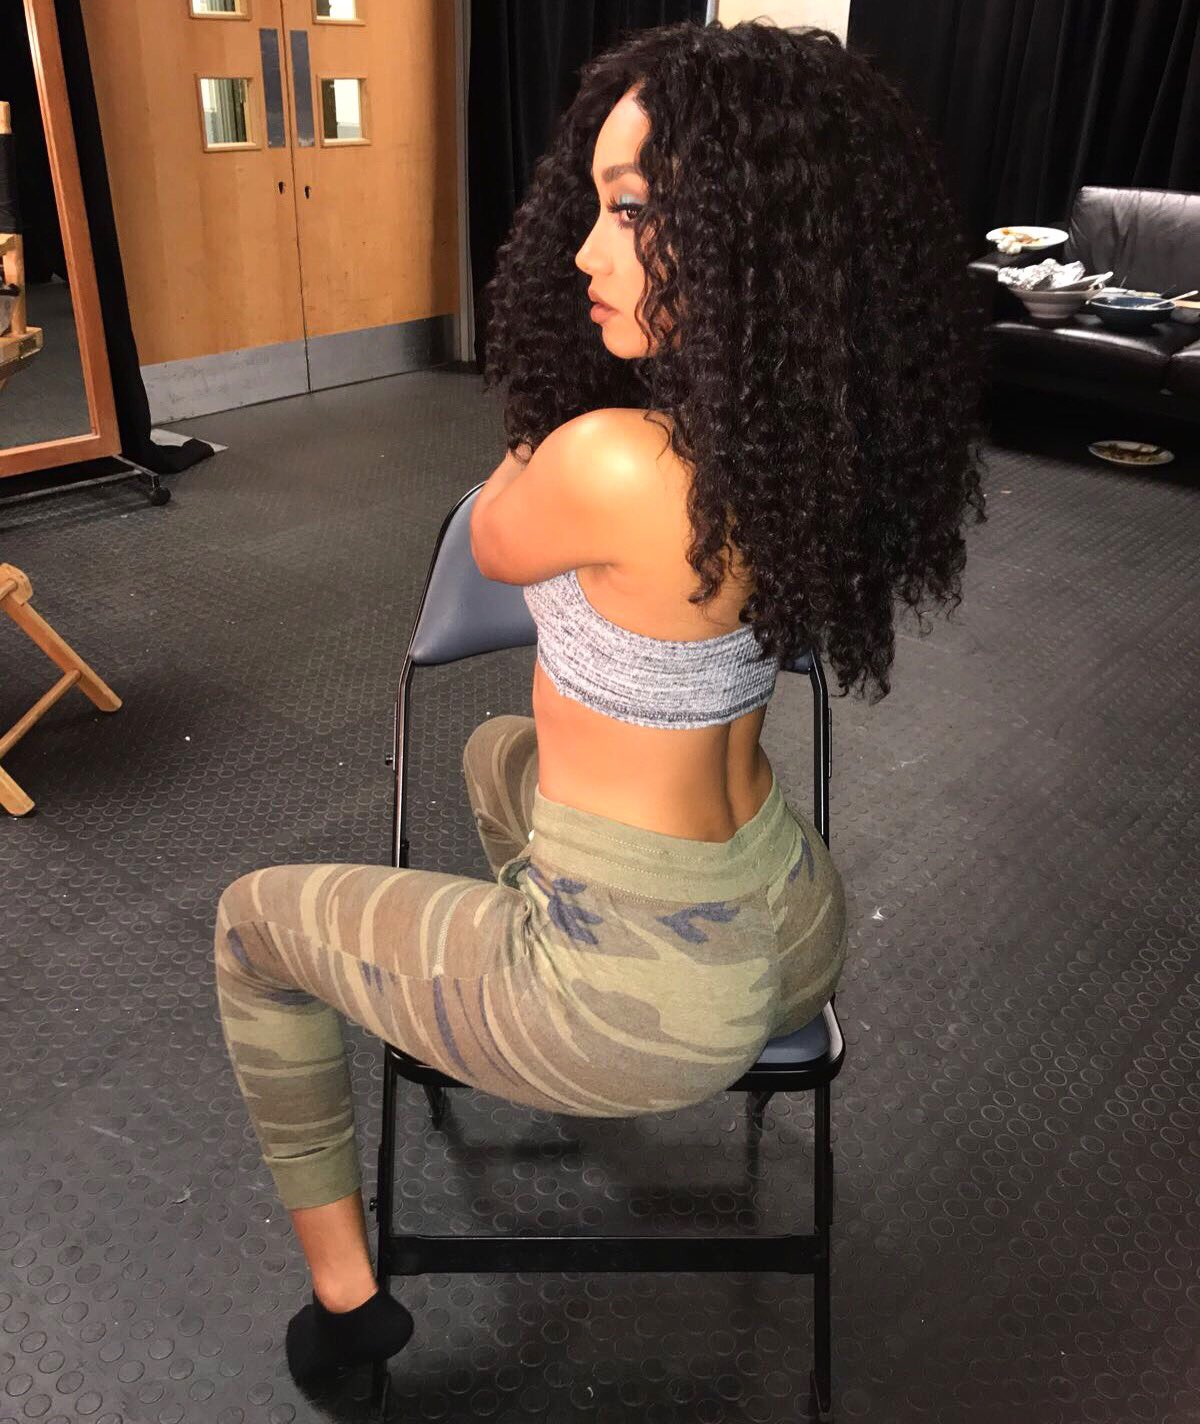 Lounging.. ❤️ x Leigh https://t.co/bPozCnOdpF